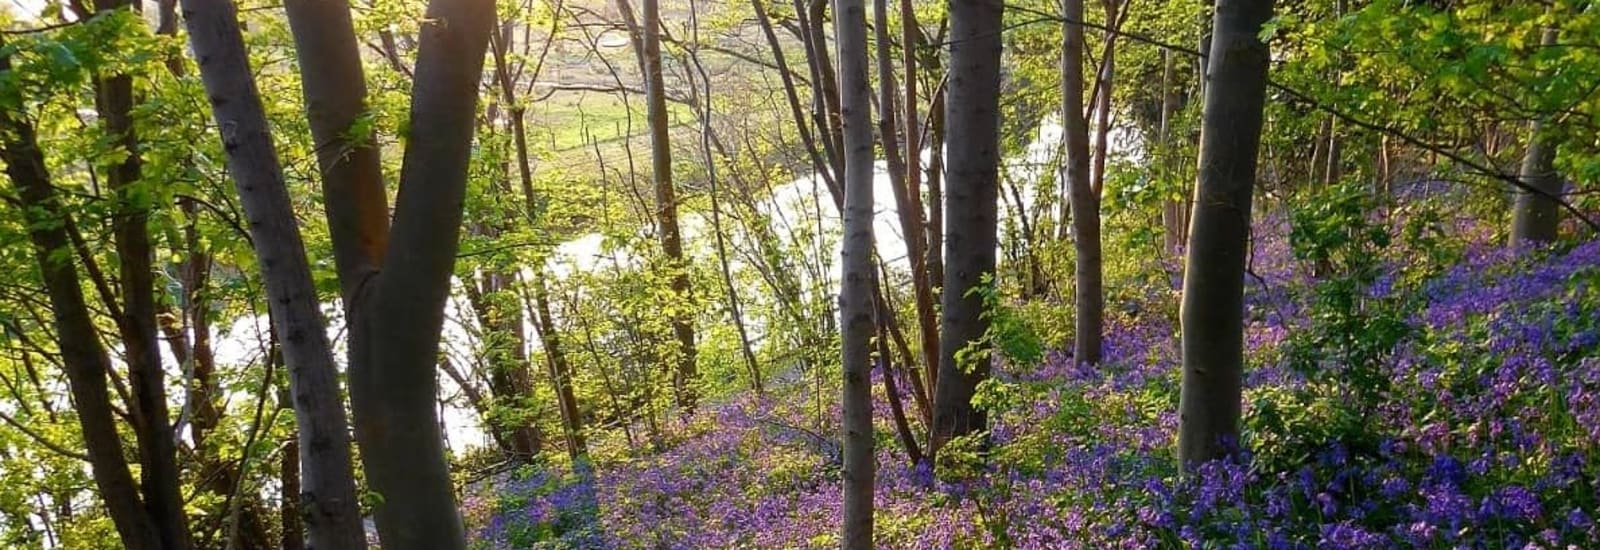 bluebells in the woods looking down into the river